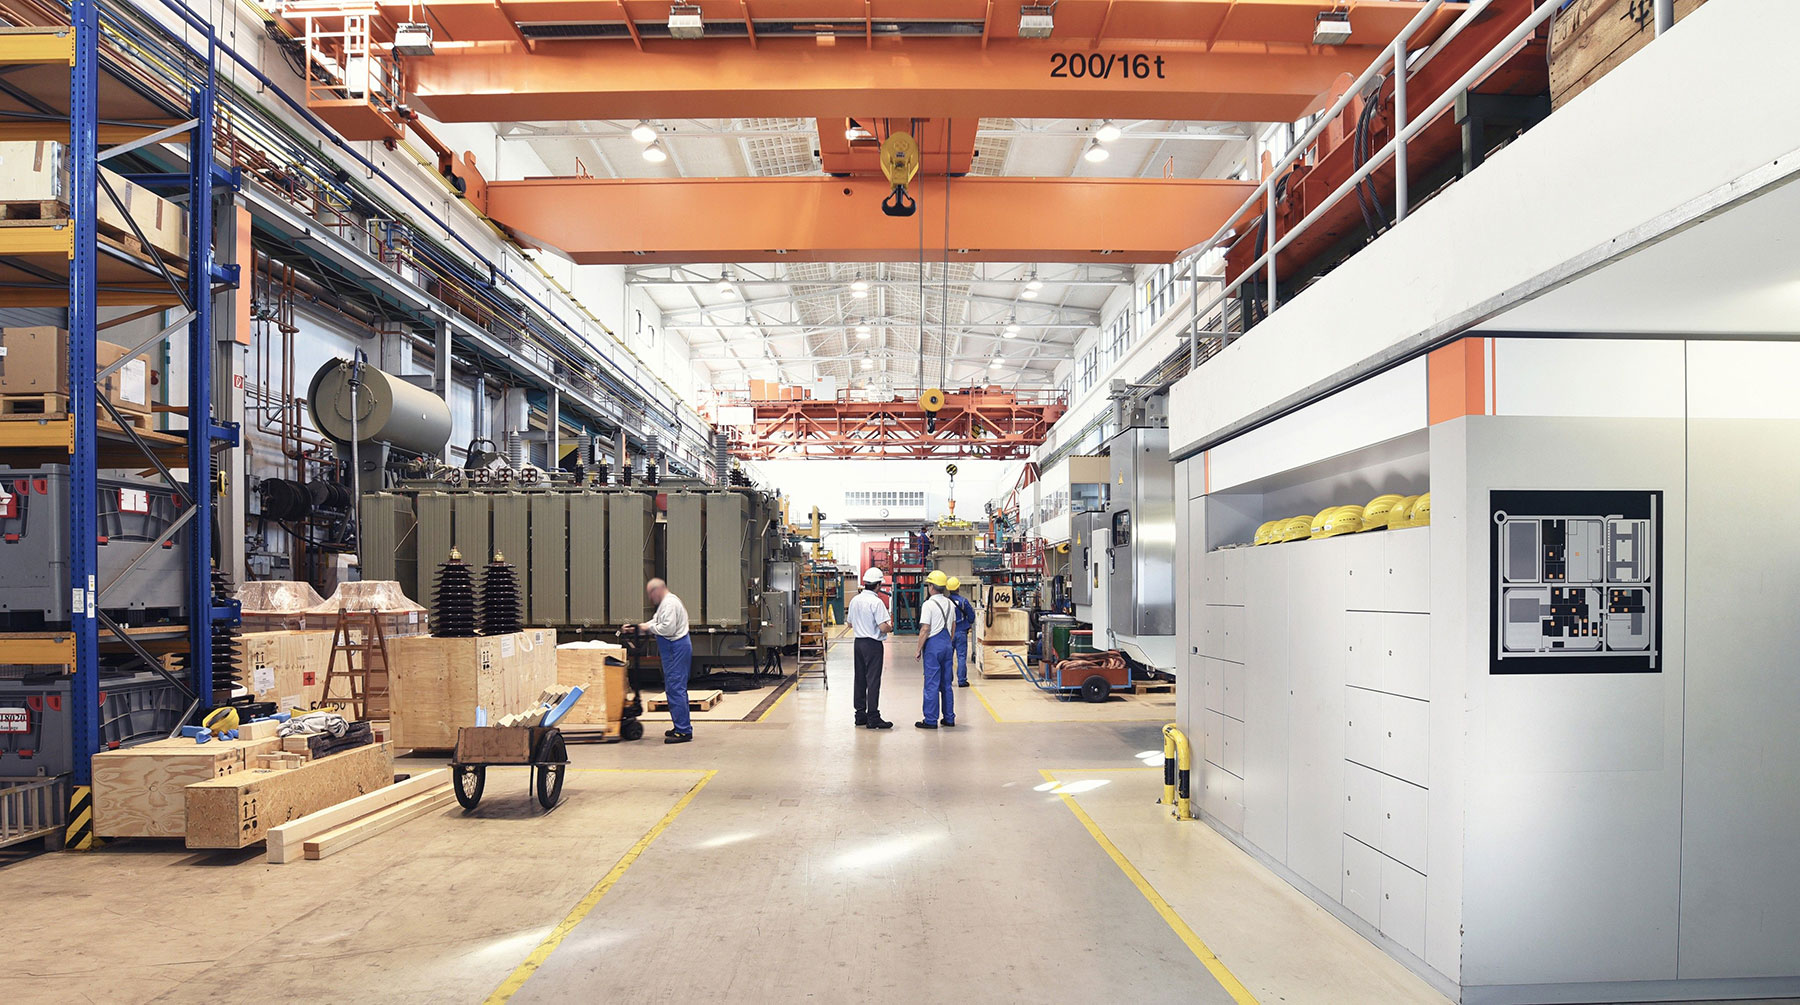 Heavy industrial manufacturing plant